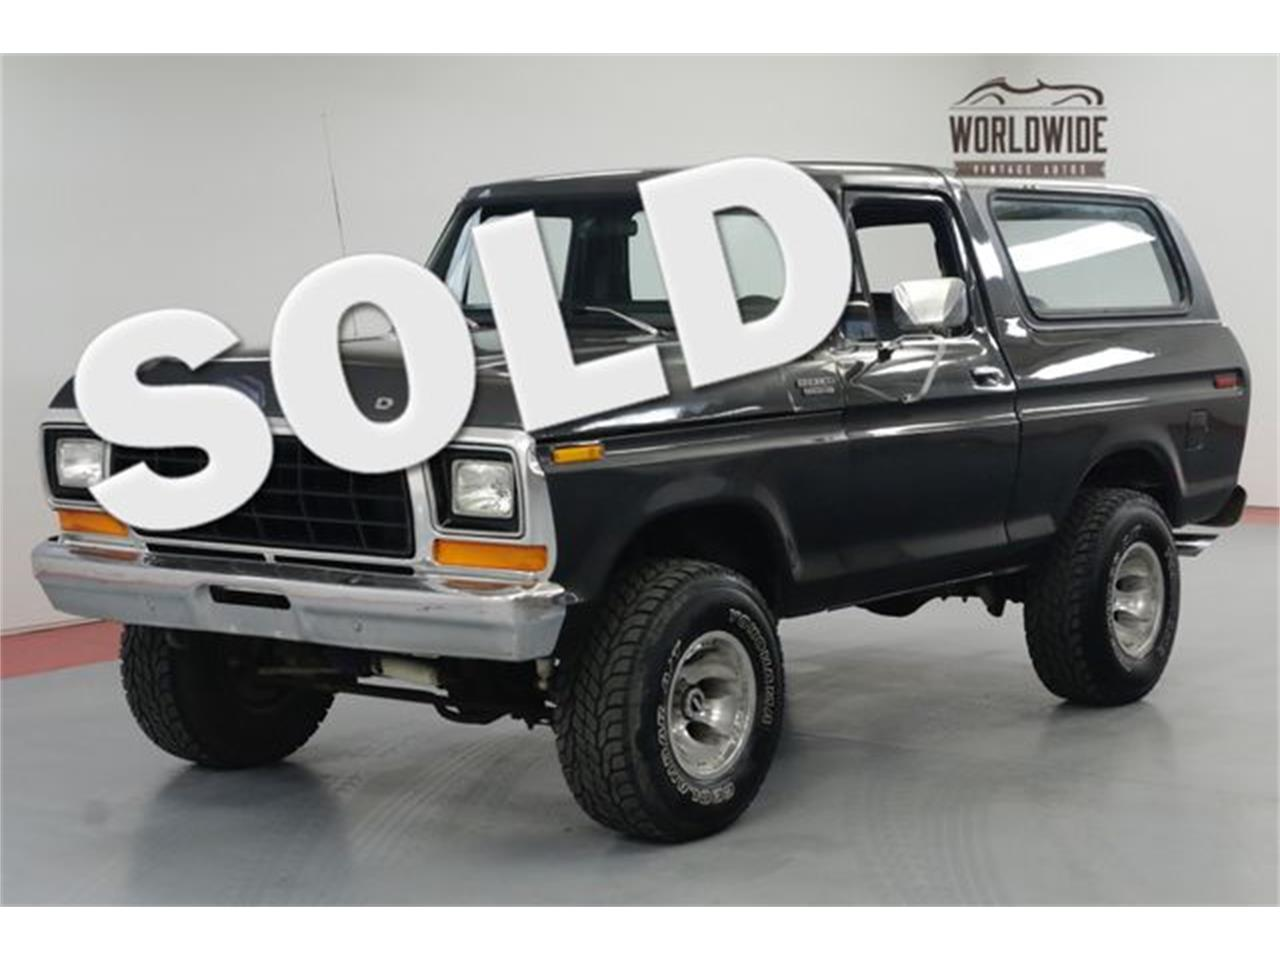 Large picture of 79 bronco o9wn